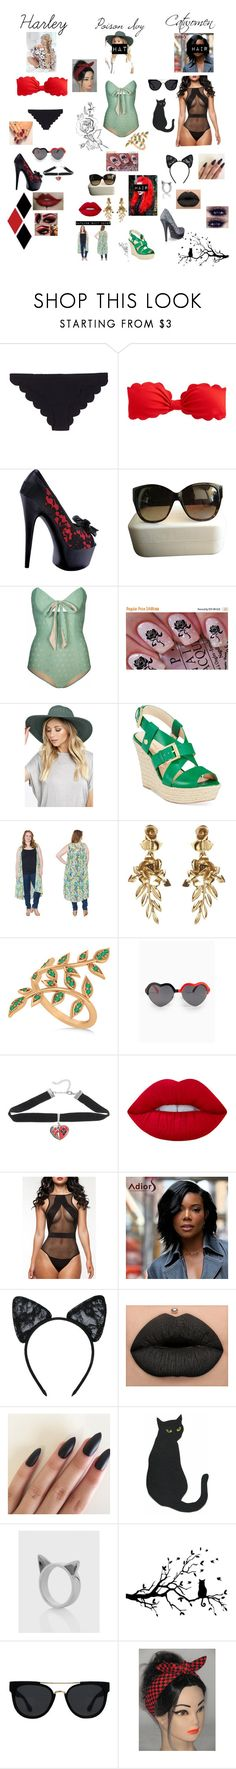 """Gotham girls going swimming"" by elizrose77864 ❤ liked on Polyvore featuring Marysia Swim, J.Crew, Ellie, Marc Jacobs, Lilliput & Felix, Billabong, Nine West, Sealed With a Kiss, Oscar de la Renta and Allurez"